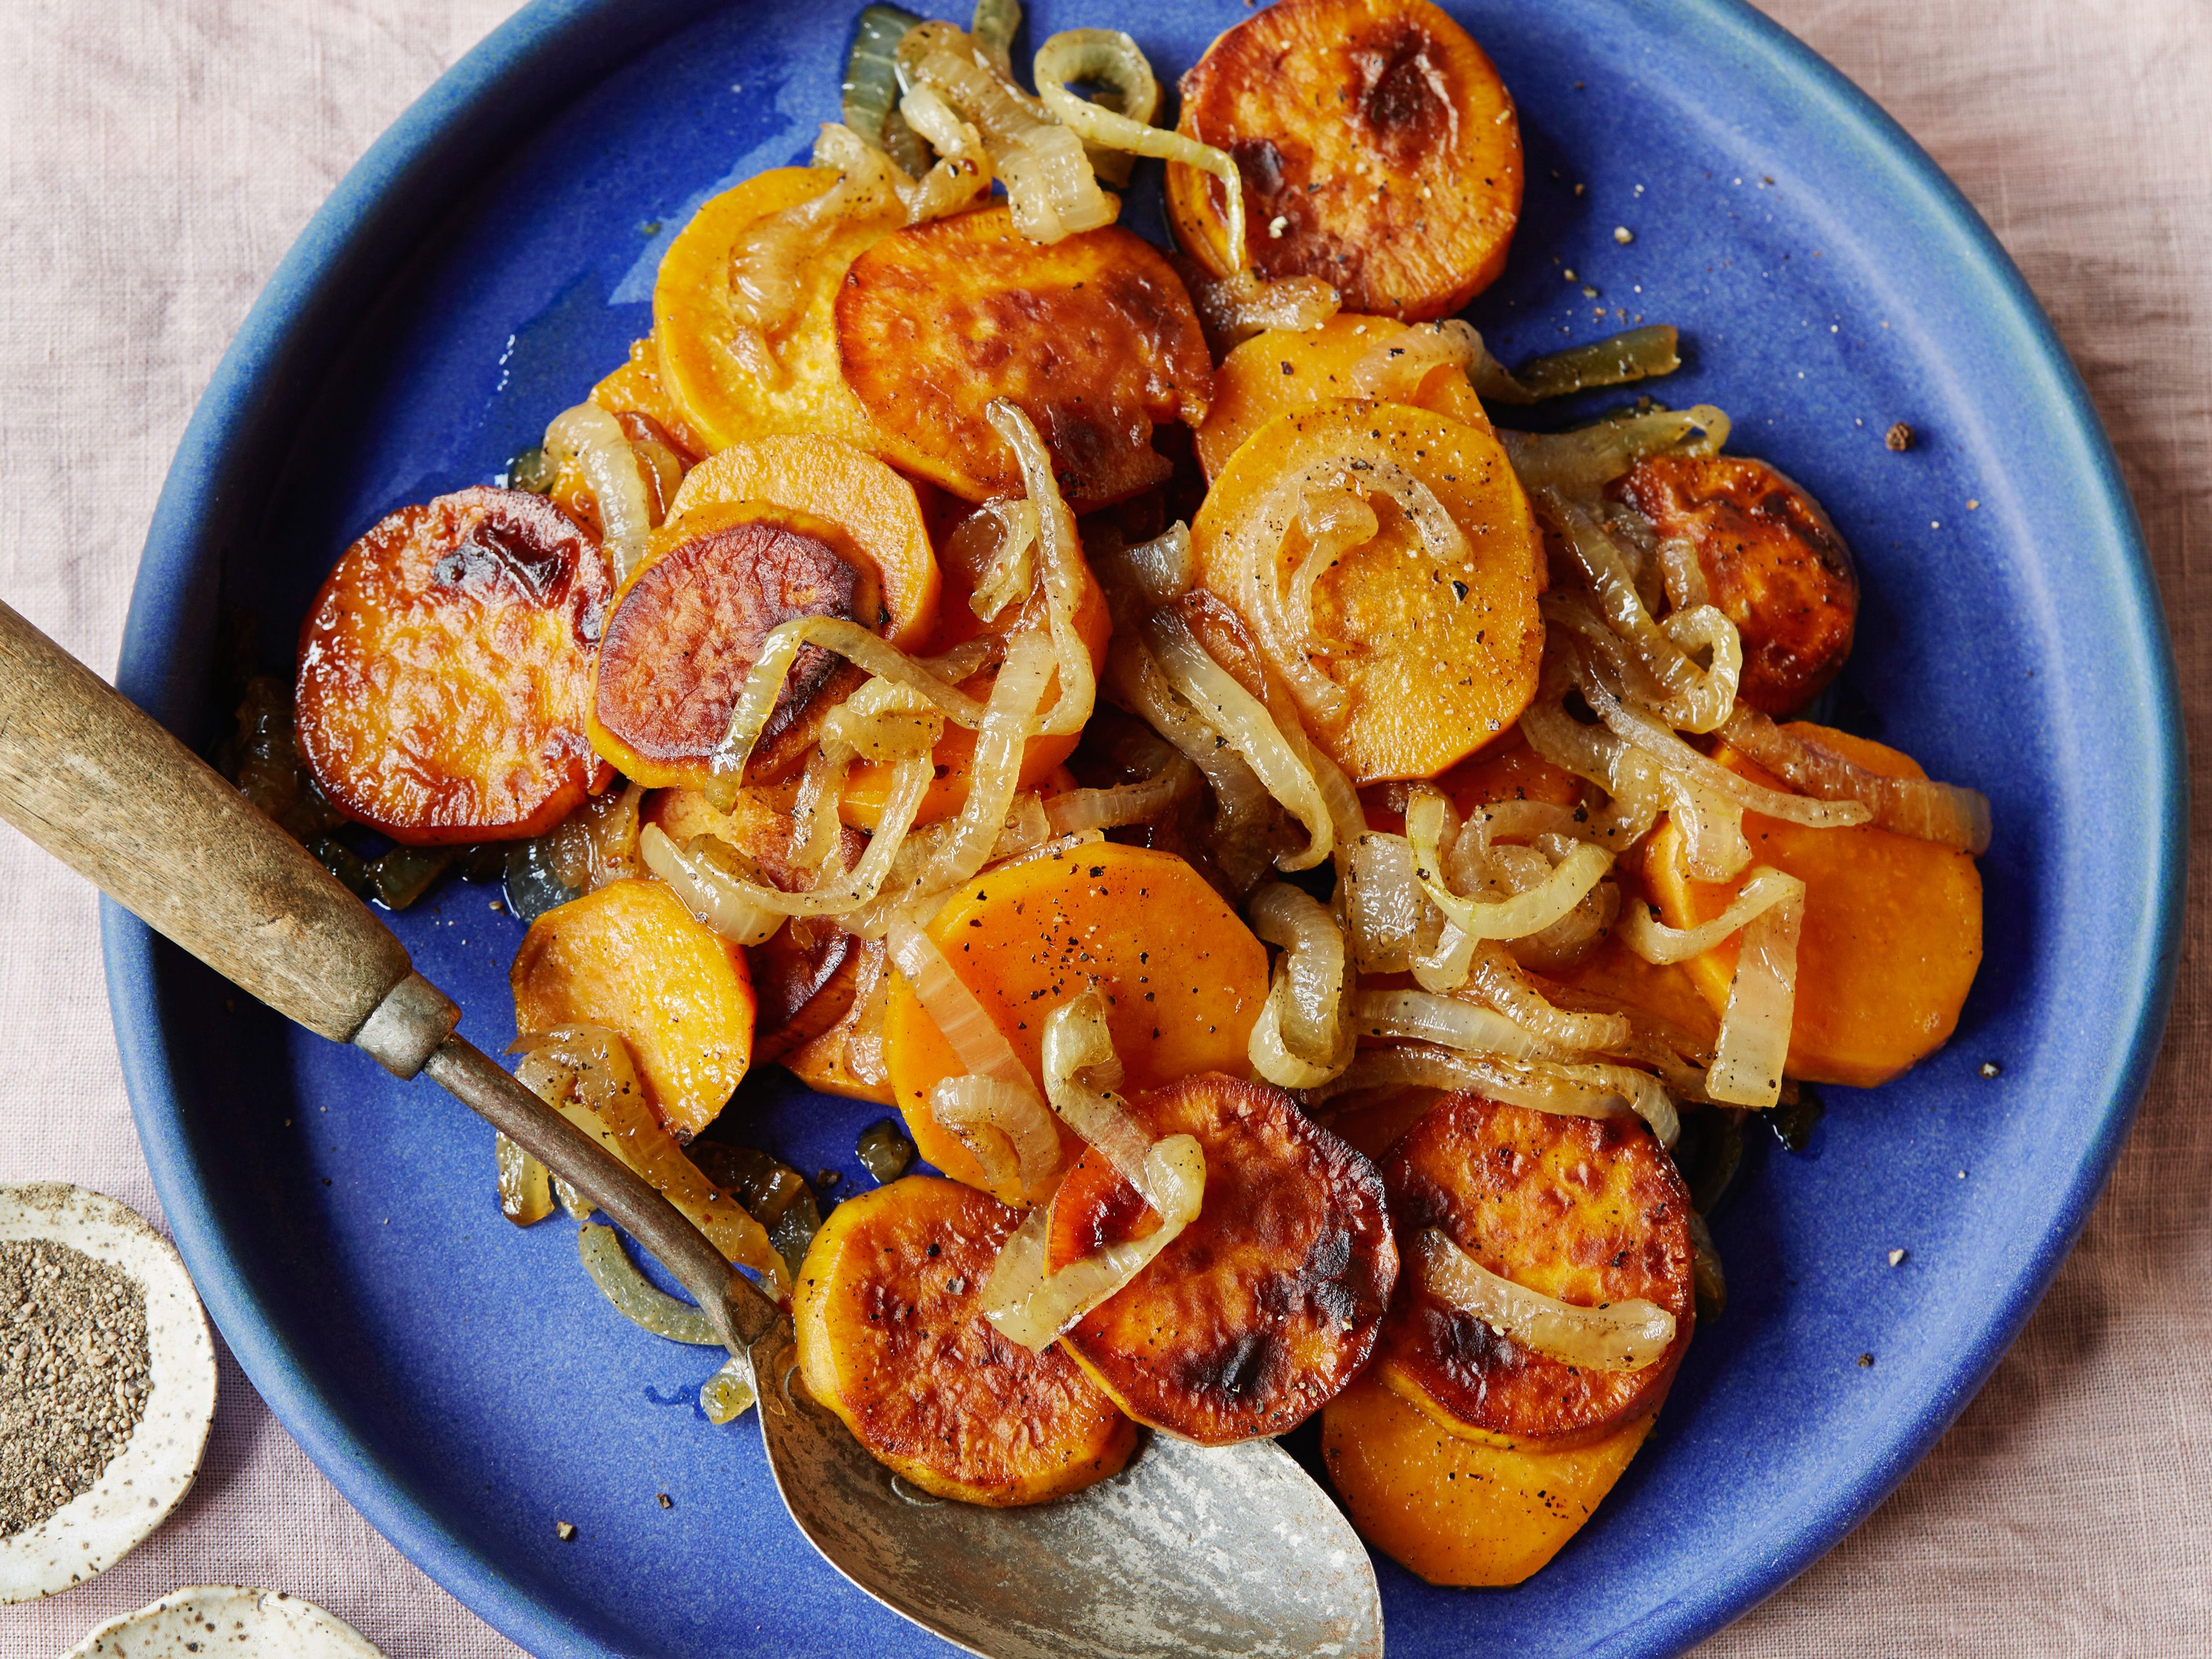 Get this all-star, easy-to-follow Sweet Potato Lyonnaise recipe from Food Network Kitchen